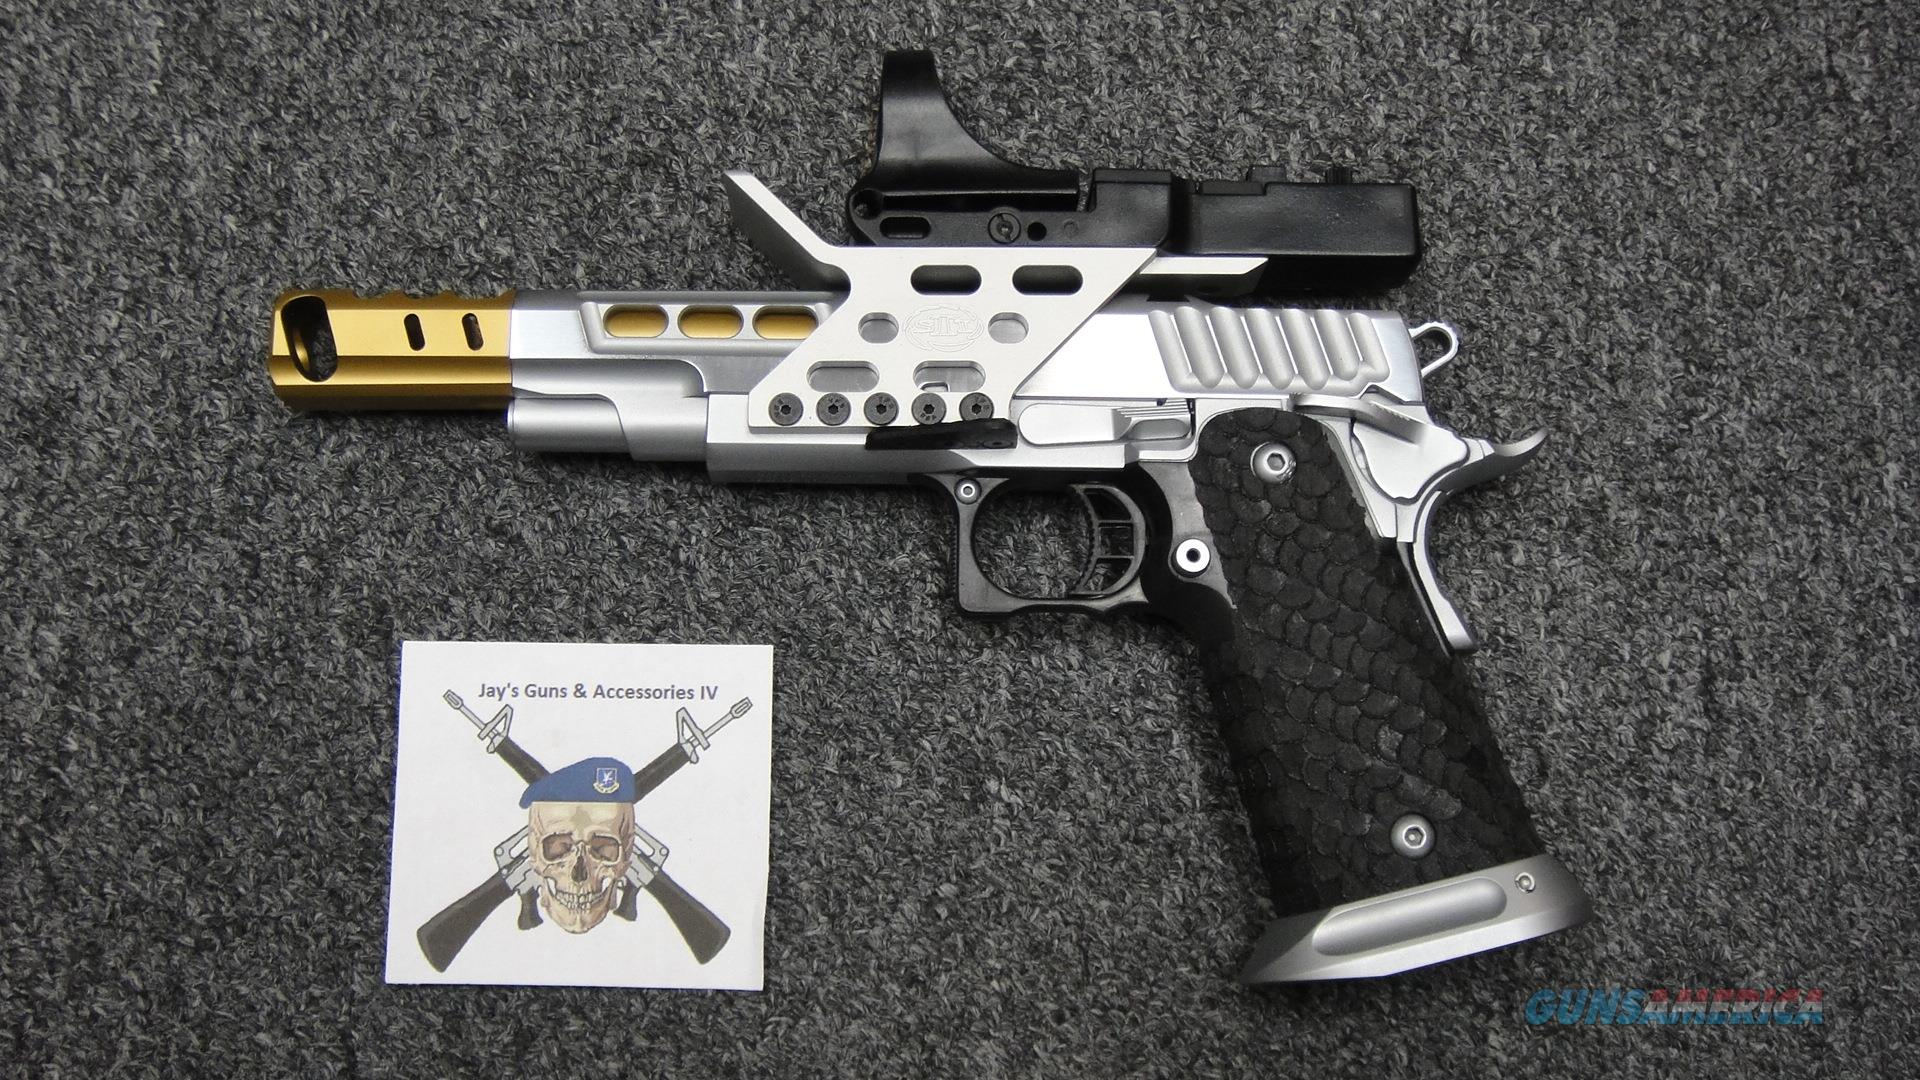 STI 2011 DVC Open 5.0 9mm--Competition Race Gun!  Guns > Pistols > STI Pistols